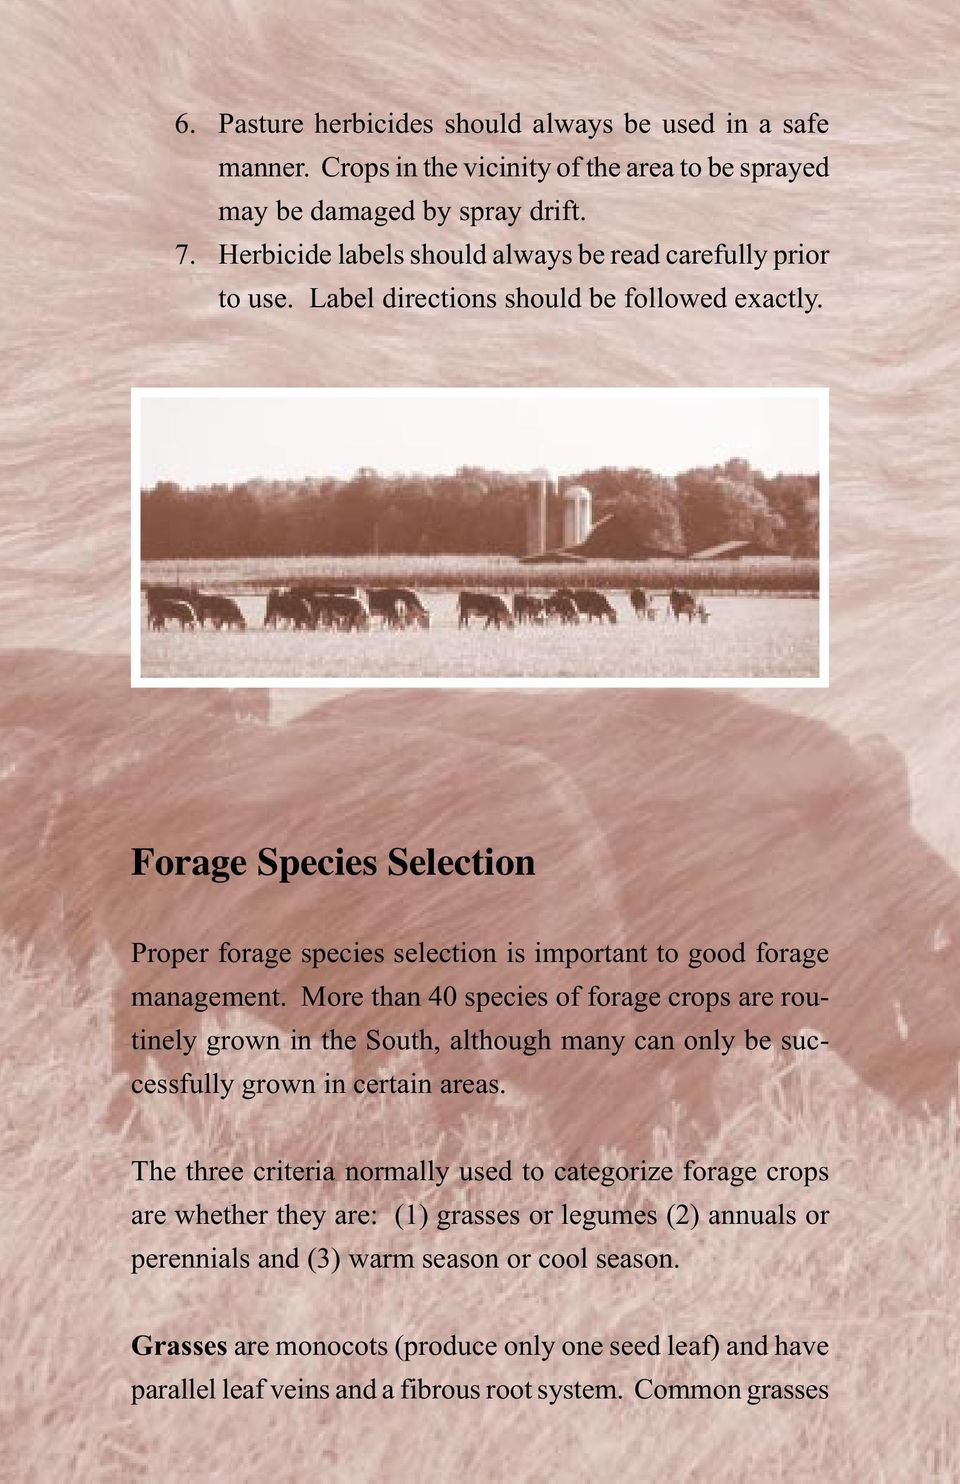 Forage Species Selection Proper forage species selection is important to good forage management.